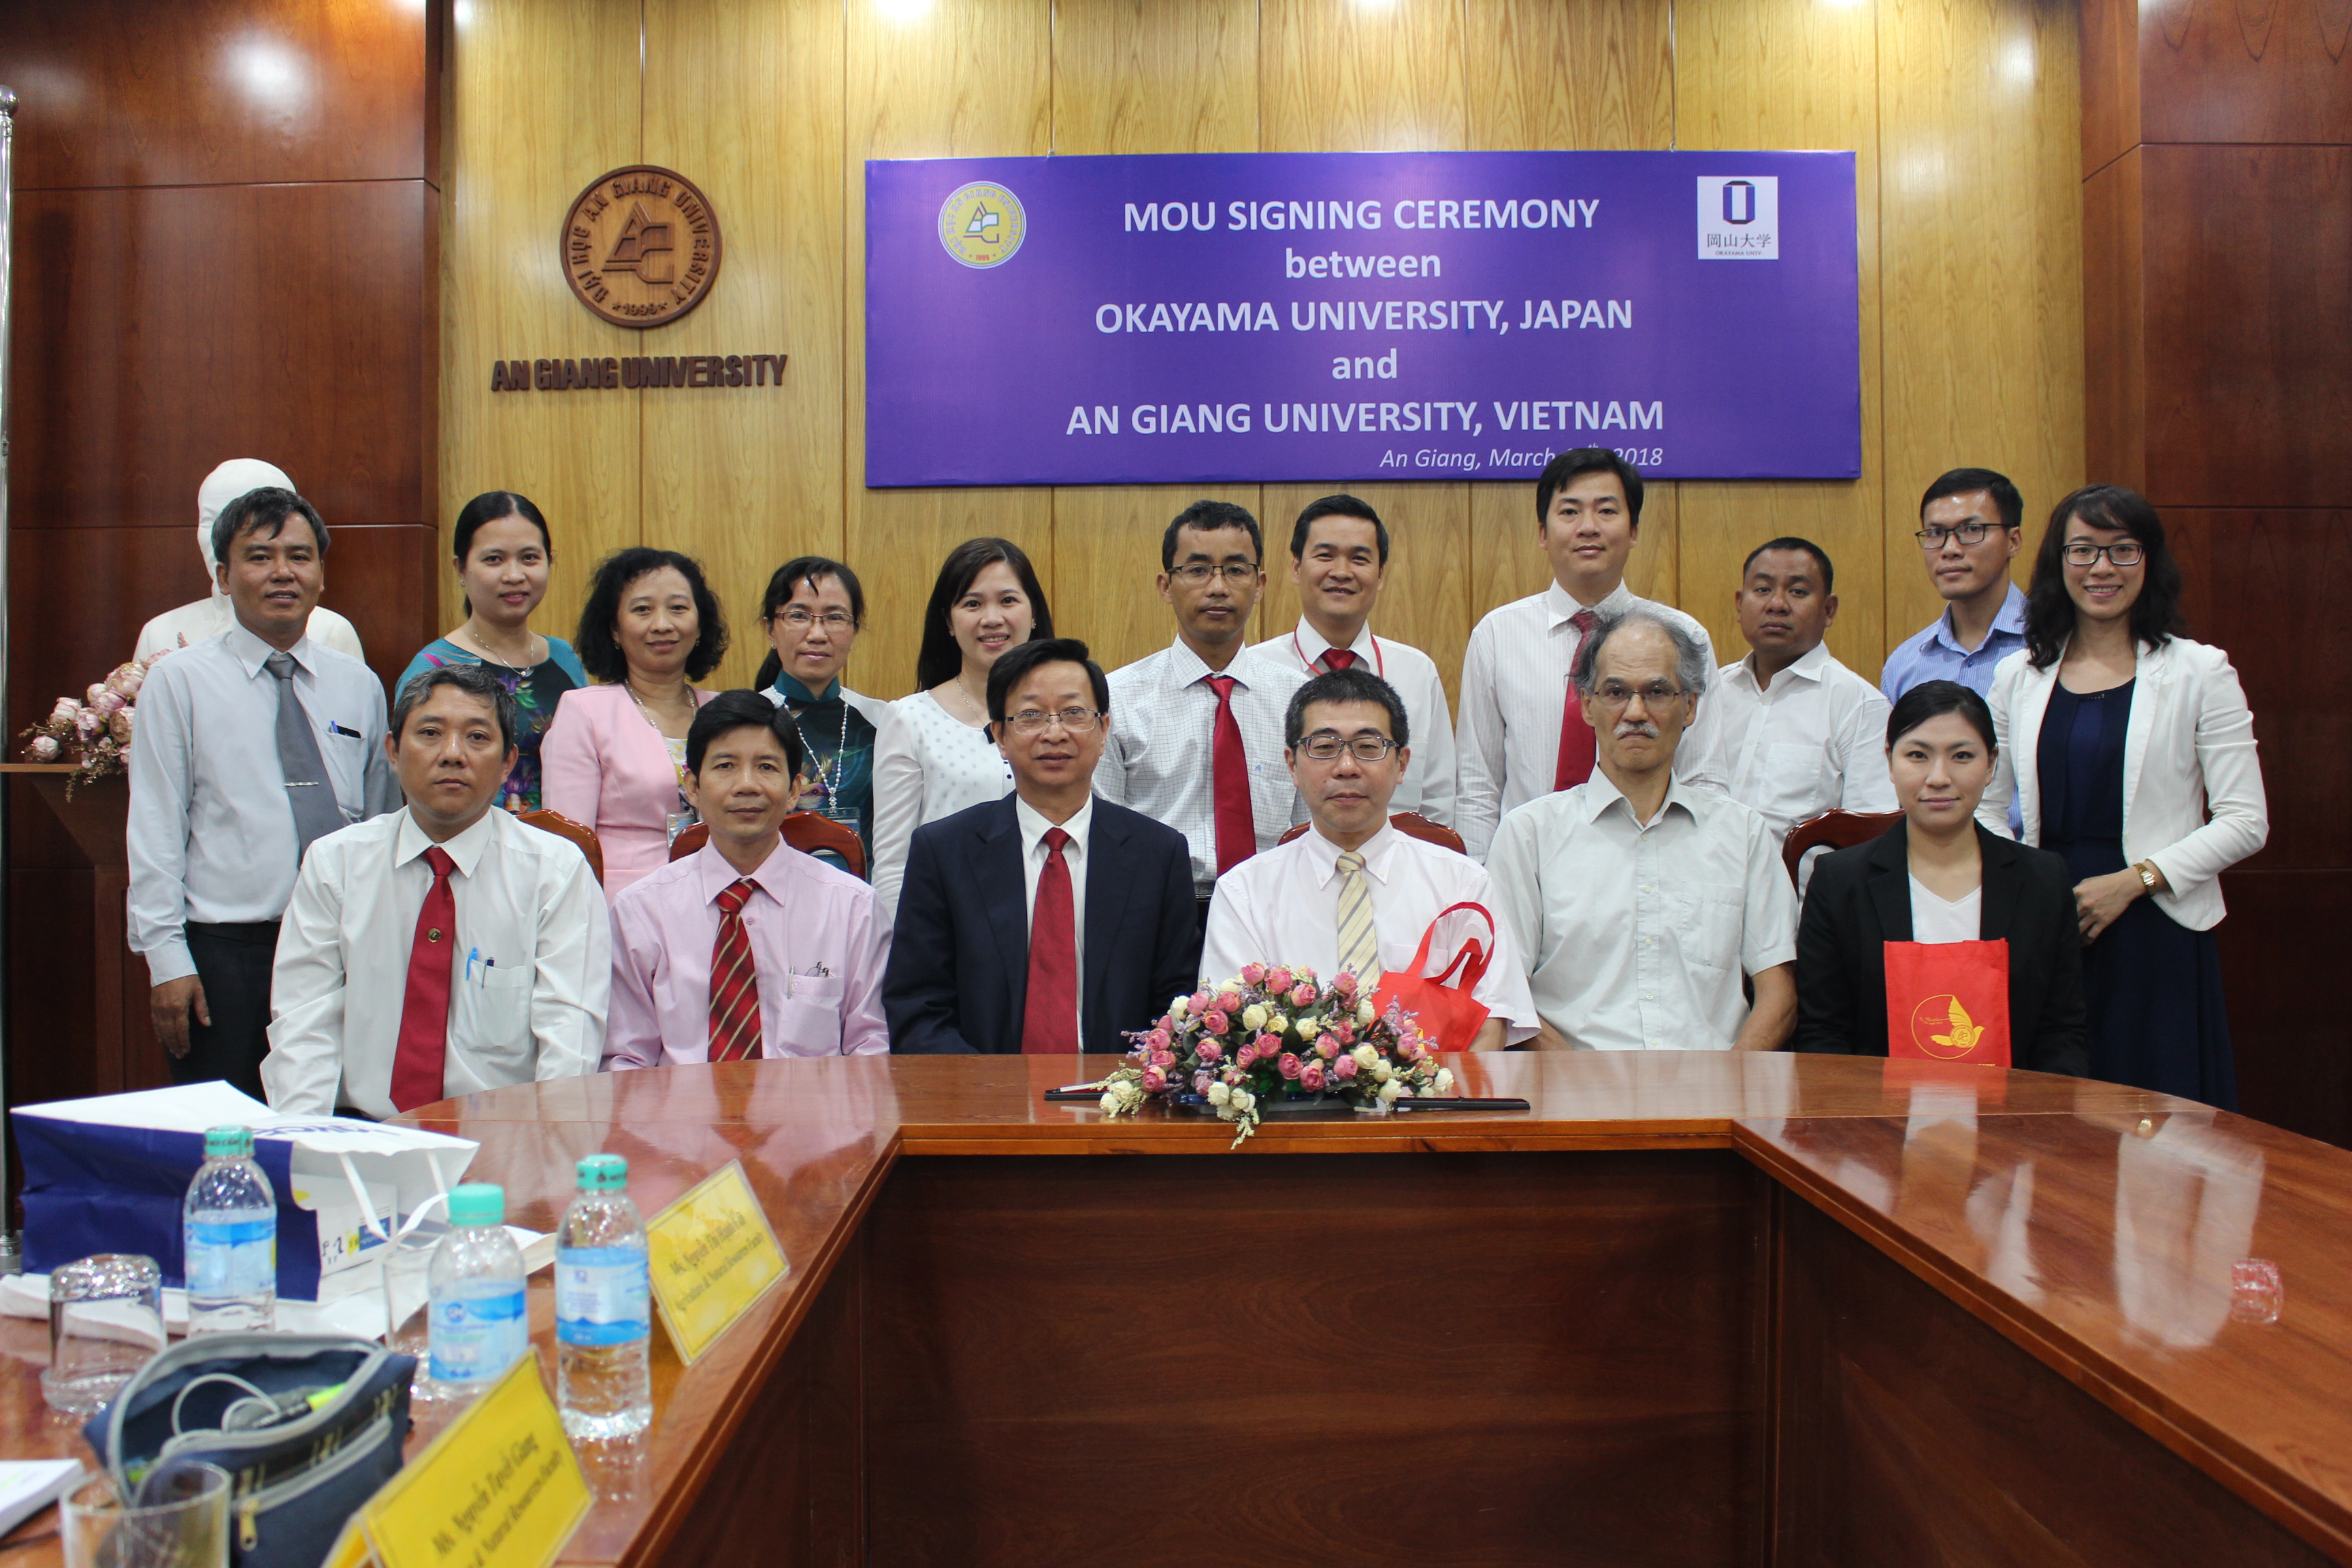 Delegates from An Giang University and Okayama University